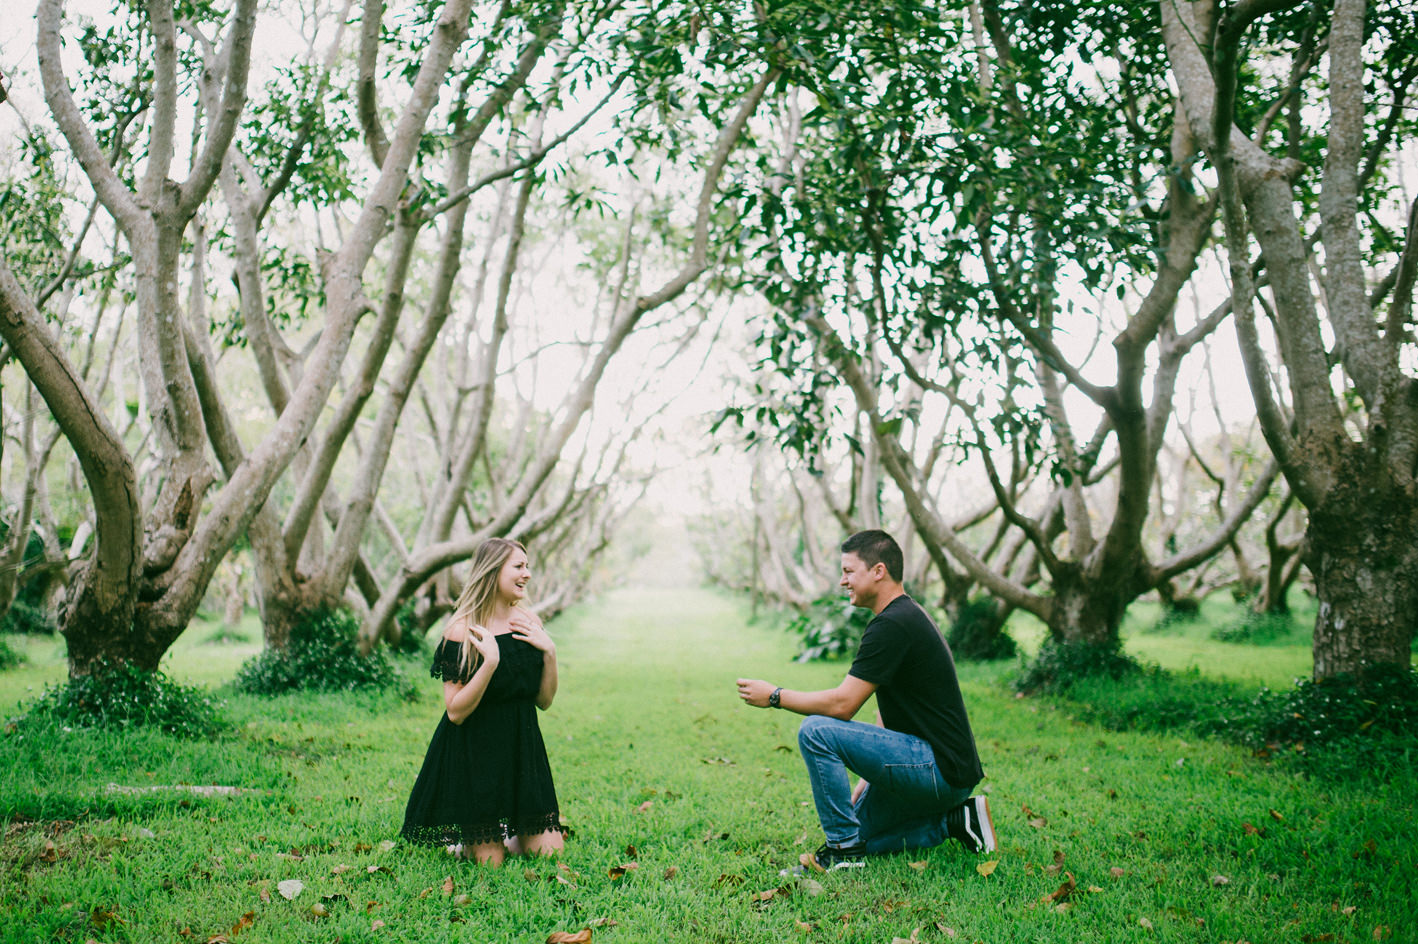 020-proposal-dan-ash_sophie-baker-photography